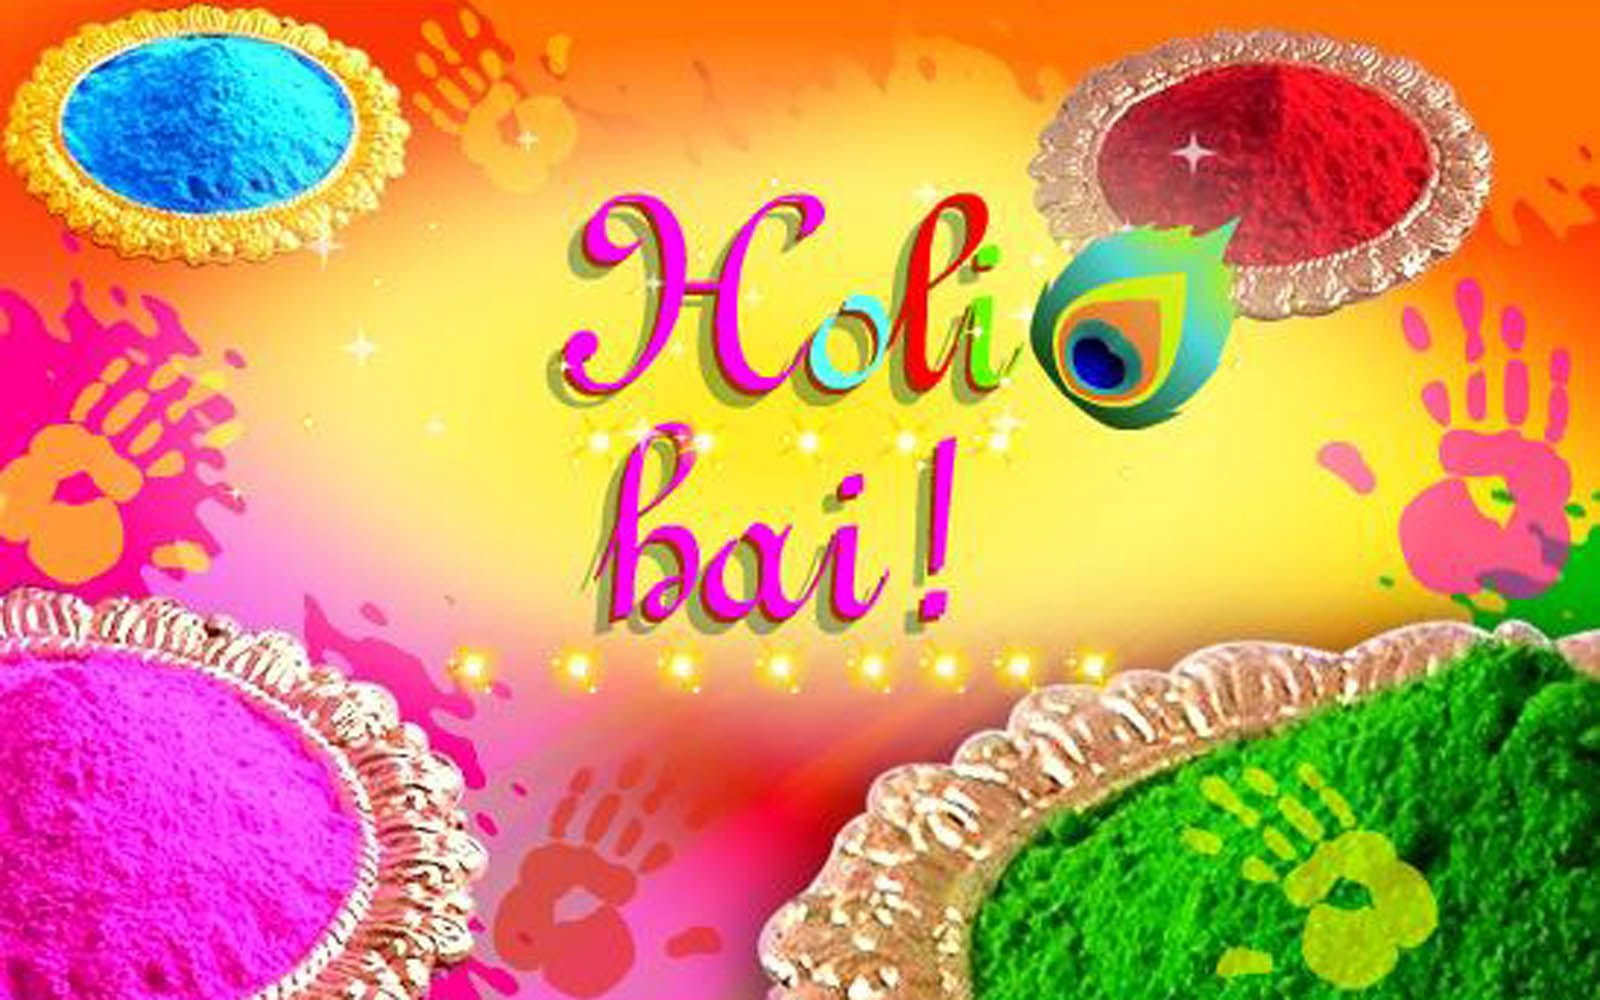 Holi festival in hindi 2016 athlone literary festival explore holi greeting cards holi greetings and more kristyandbryce Image collections